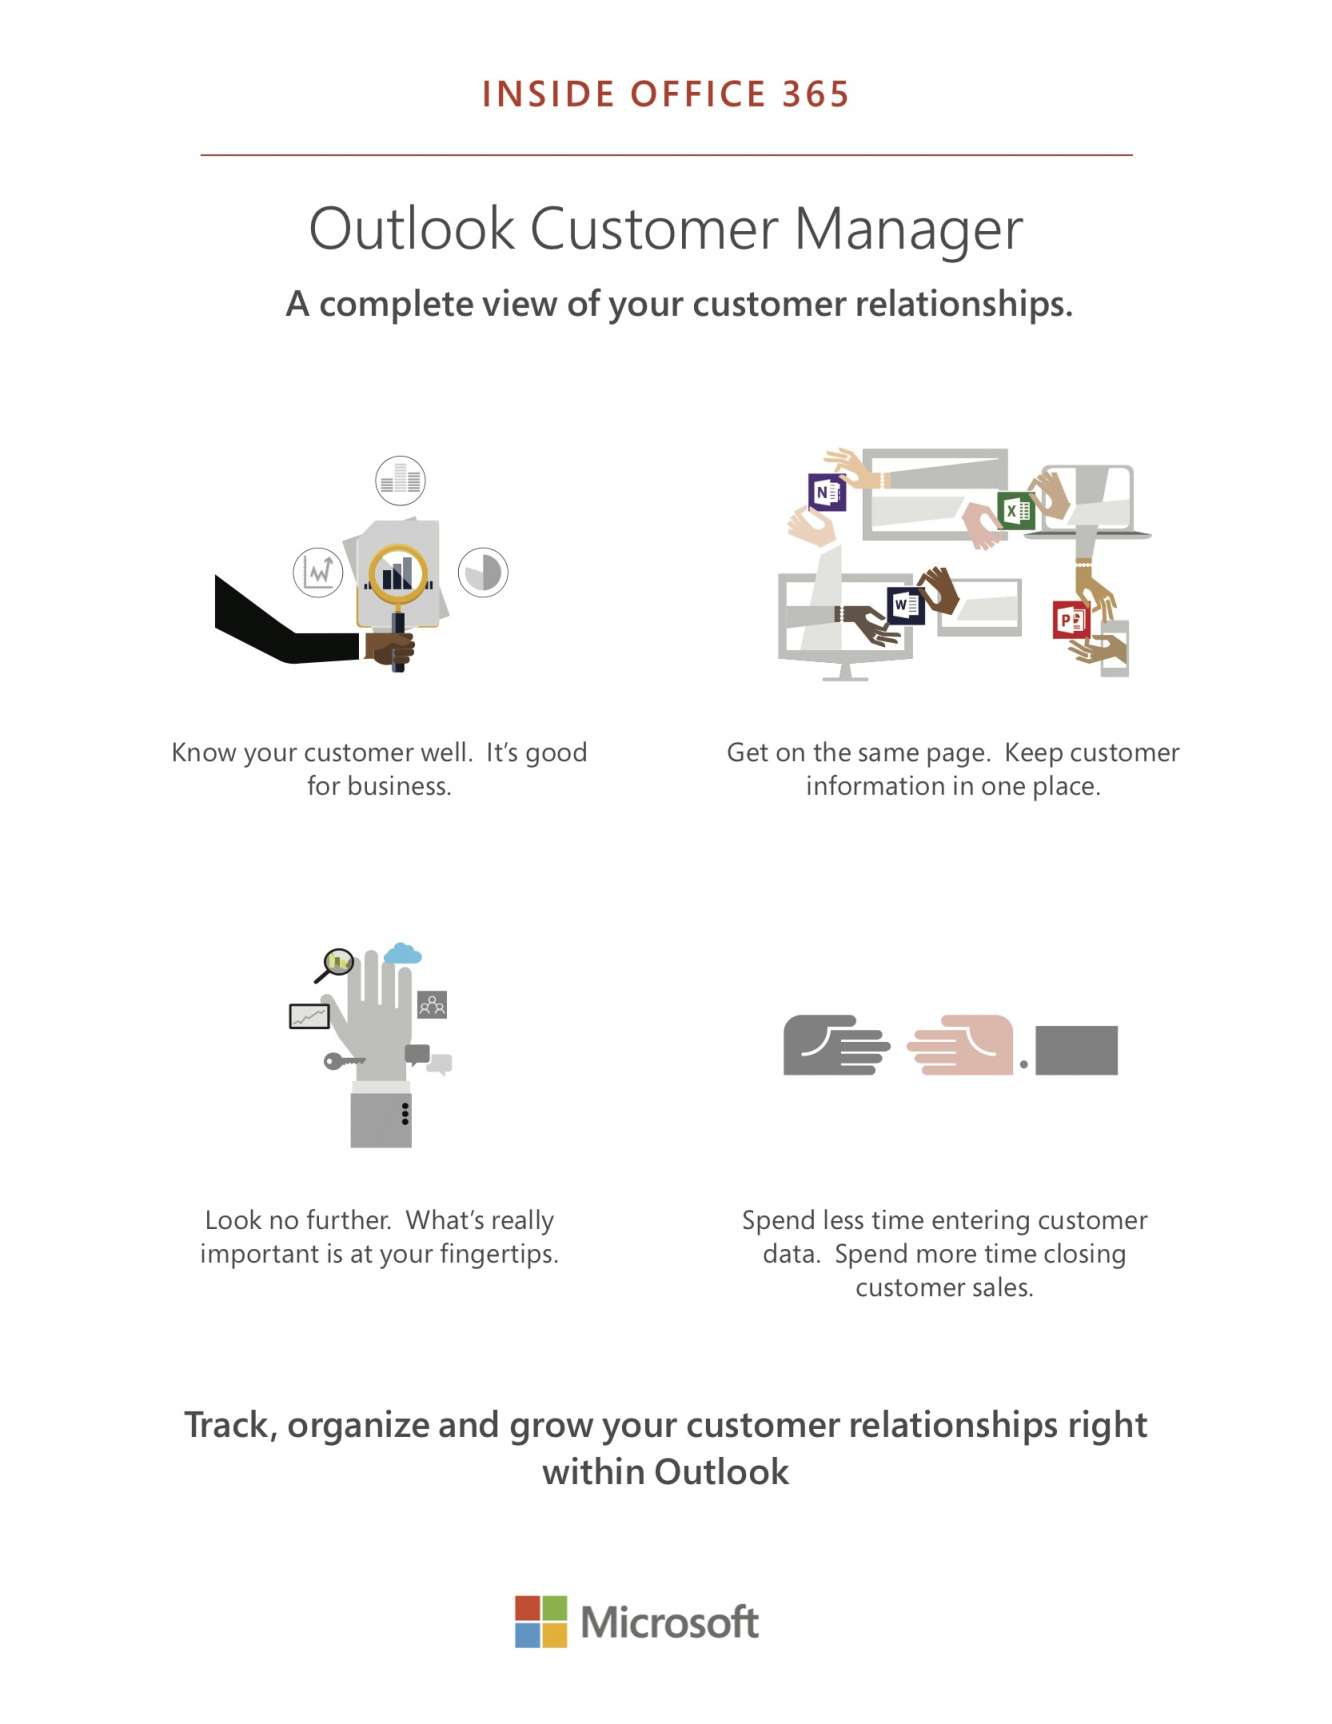 Outlook Customer Manager – A complete view of your customer relationships